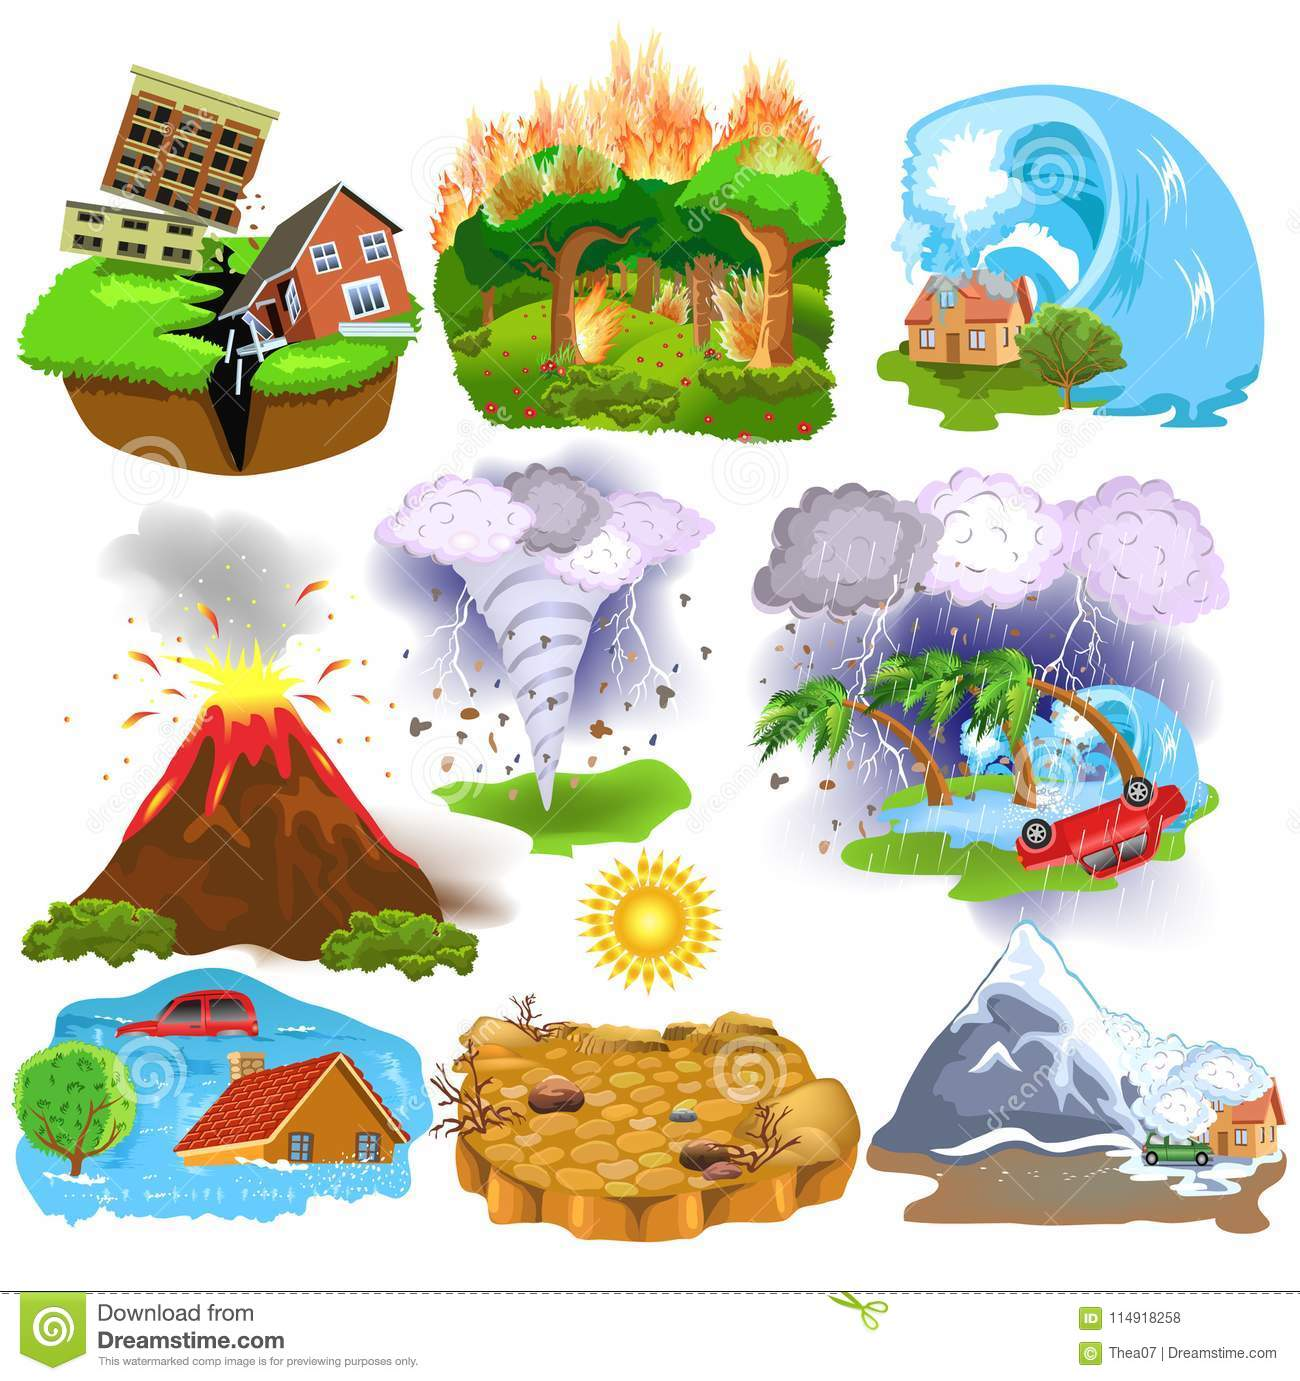 Wildfire Worksheets For Kids